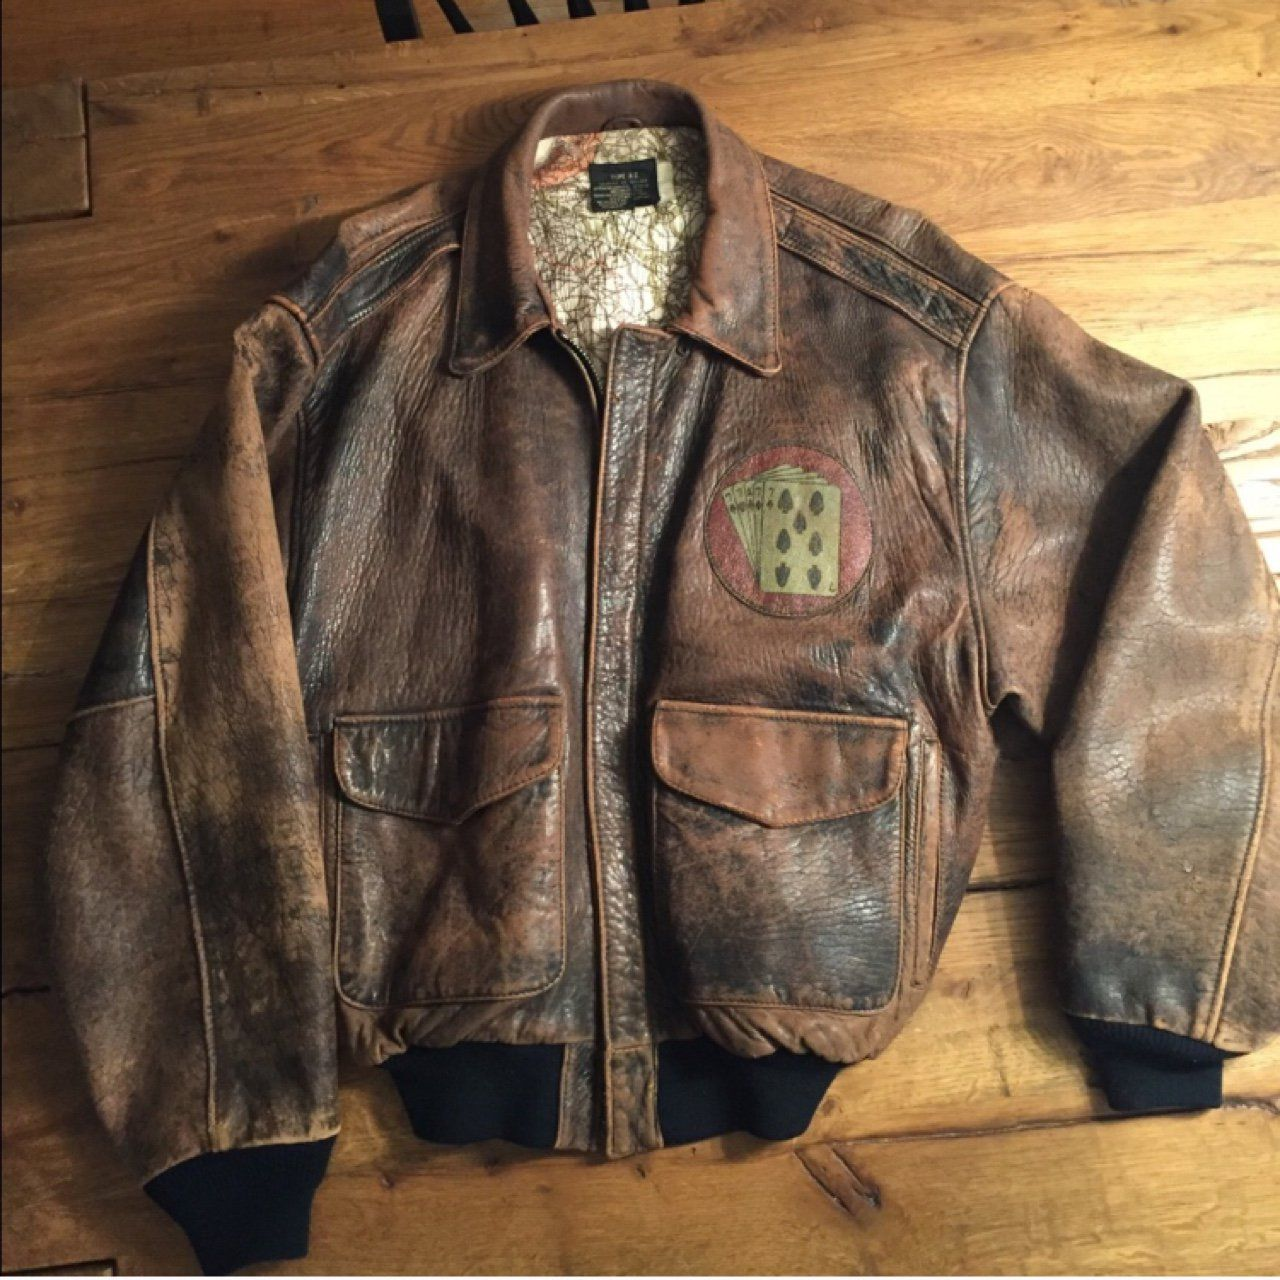 7e171b4cf49 Authentic Avirex LTD Flight Jacket. Vintage 80s. Type A-2. Sack Time pin up  across the back. Distressed brown leather. Snap down point collar.